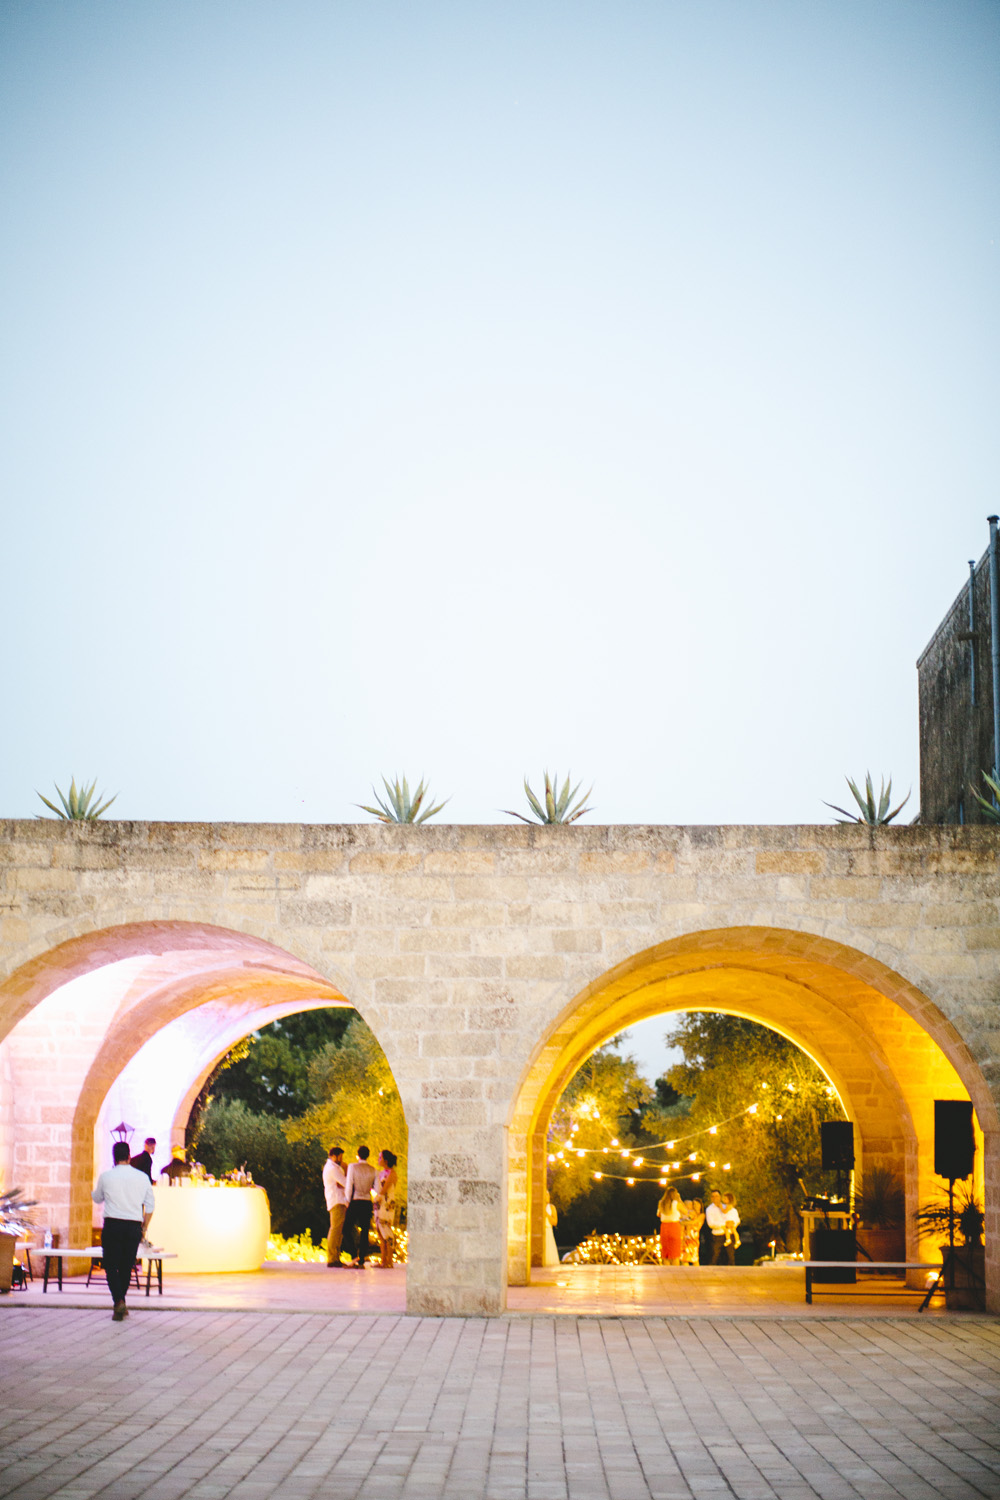 Les Amis Photo_Destination Wedding Photographer_Puglia Wedding_Masseria Torre Ruggeri_NICMATT_485.jpg